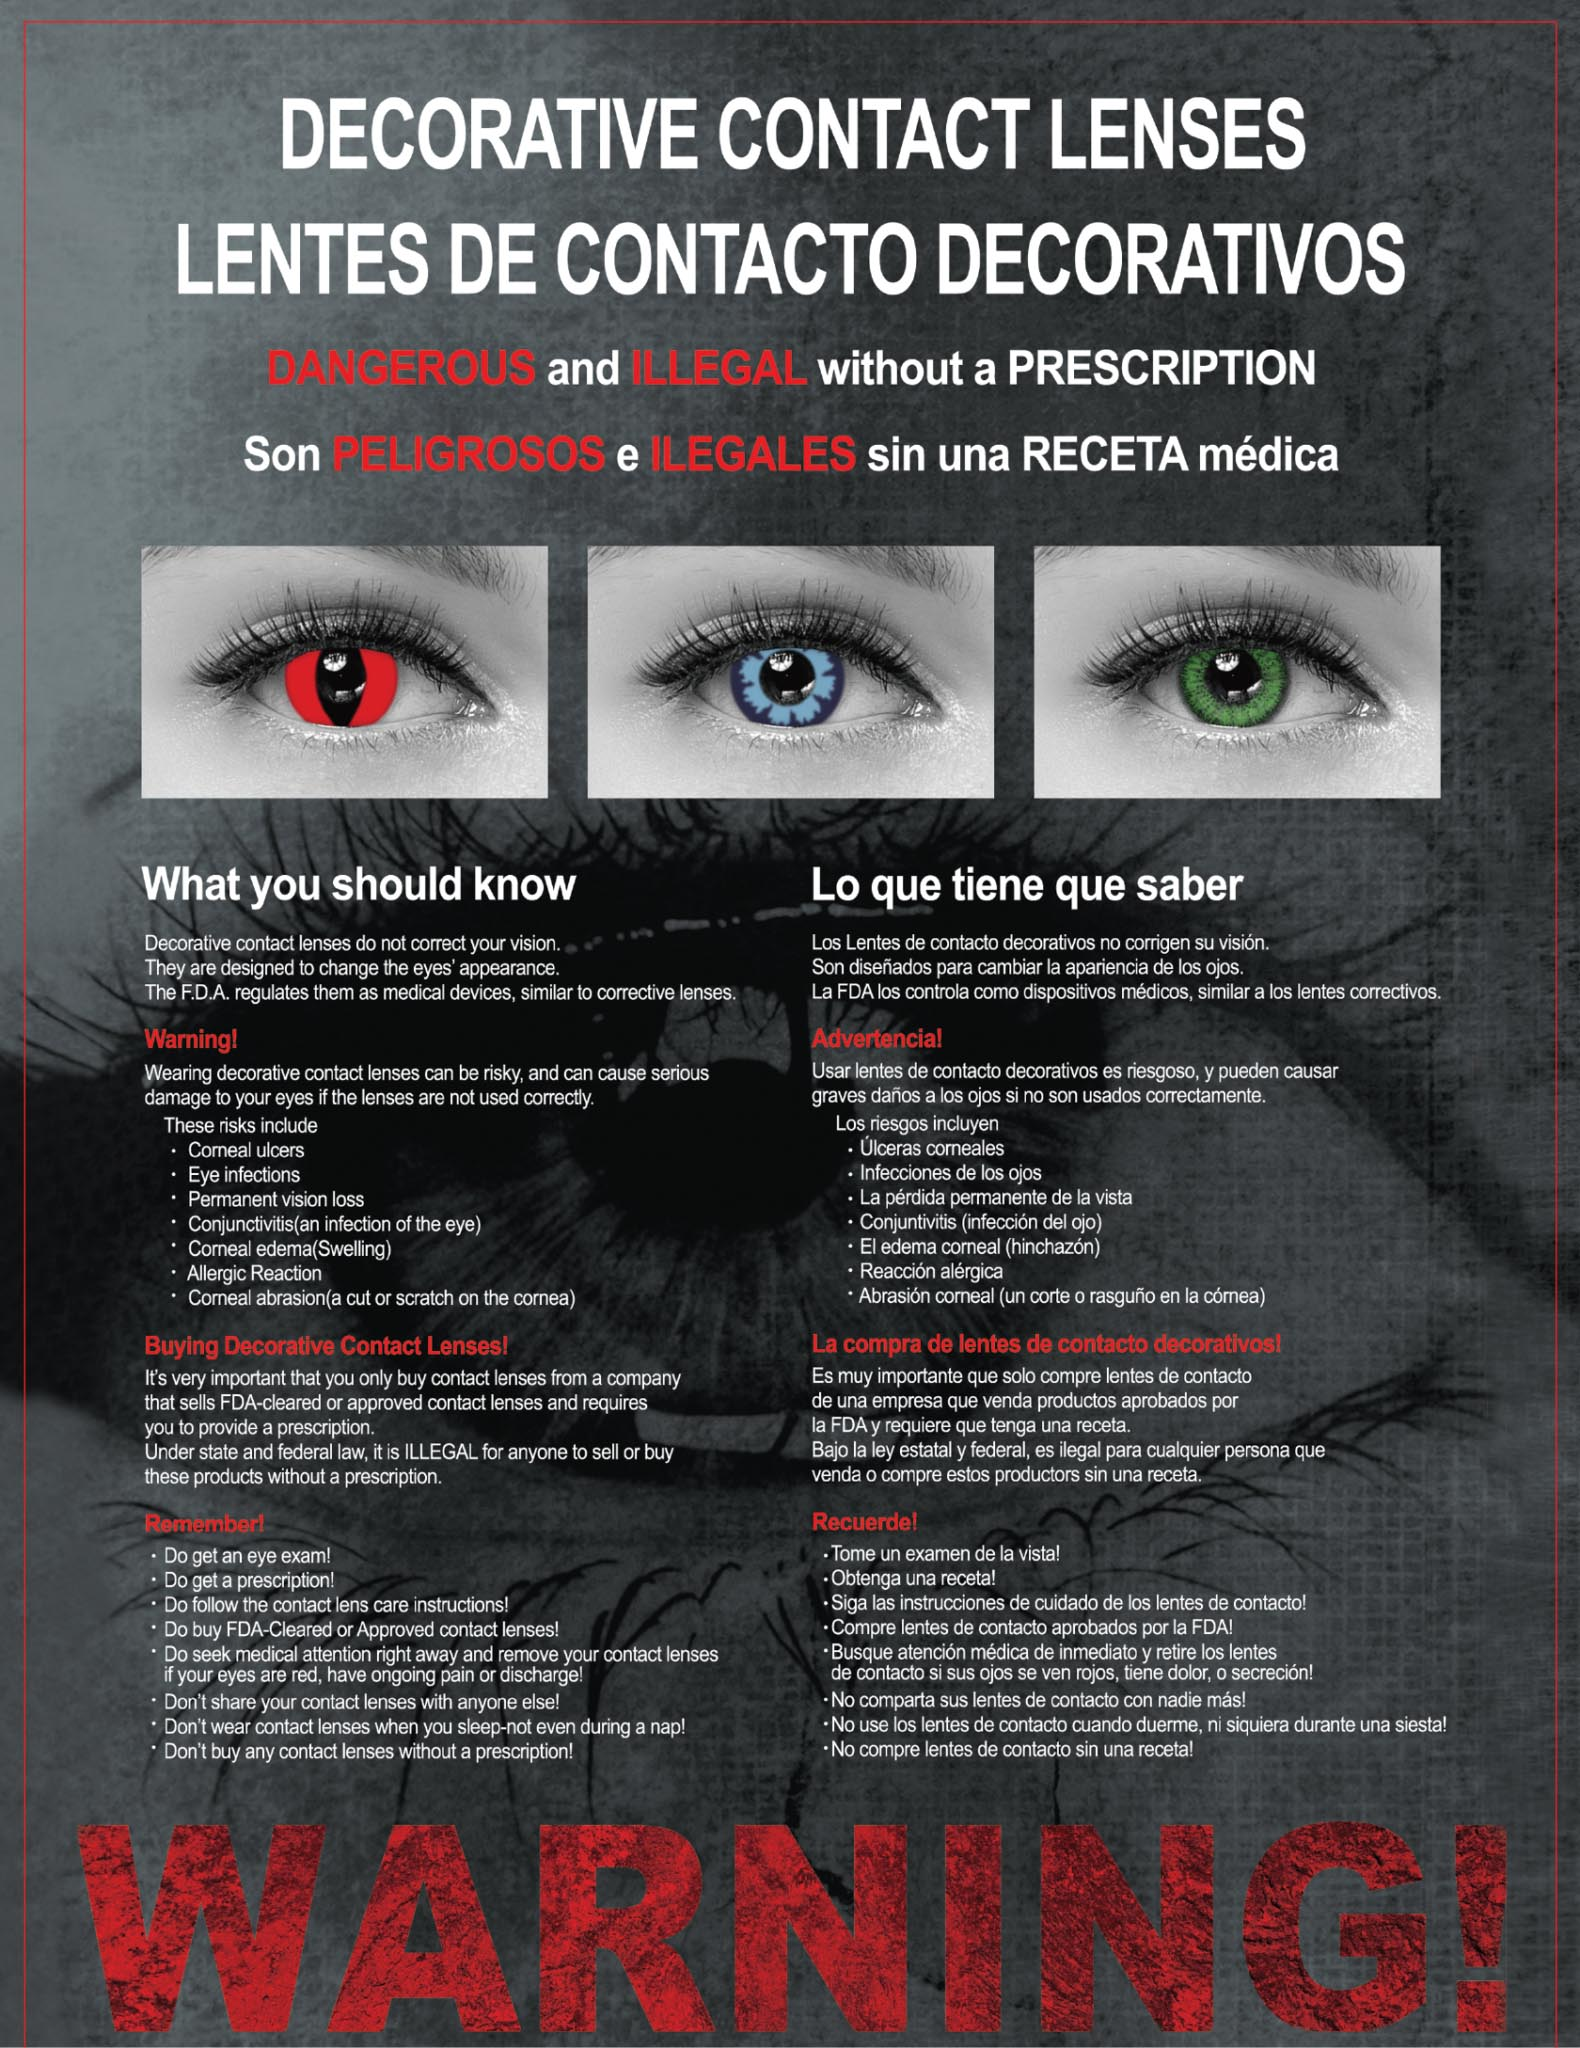 LenzOutlet Decorative Contact Lenses Warning Poster